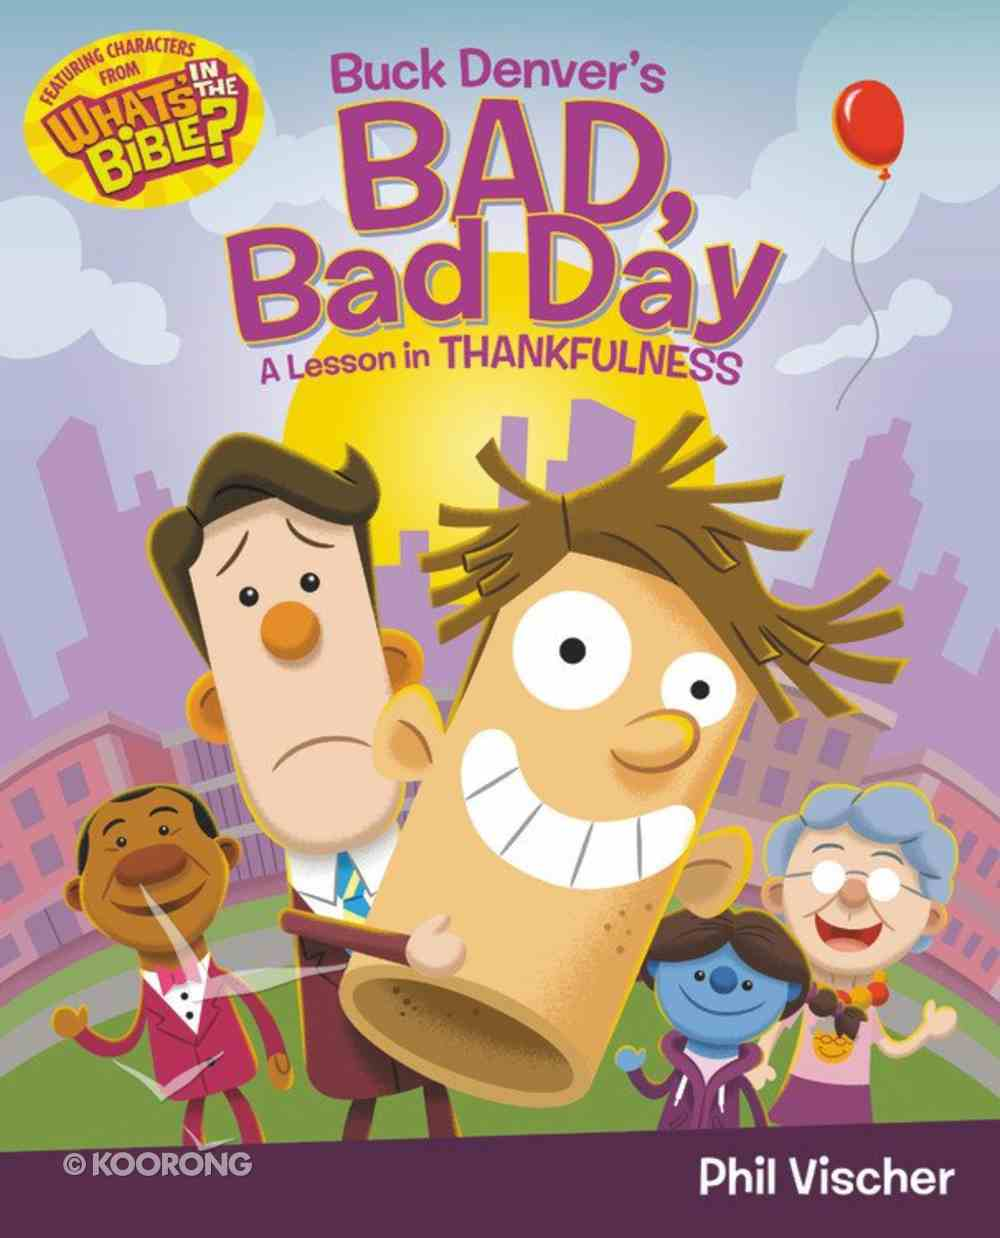 Buck Denver's Bad, Bad Day: A Lesson in Thankfulness (What's In The Bible Series) Hardback